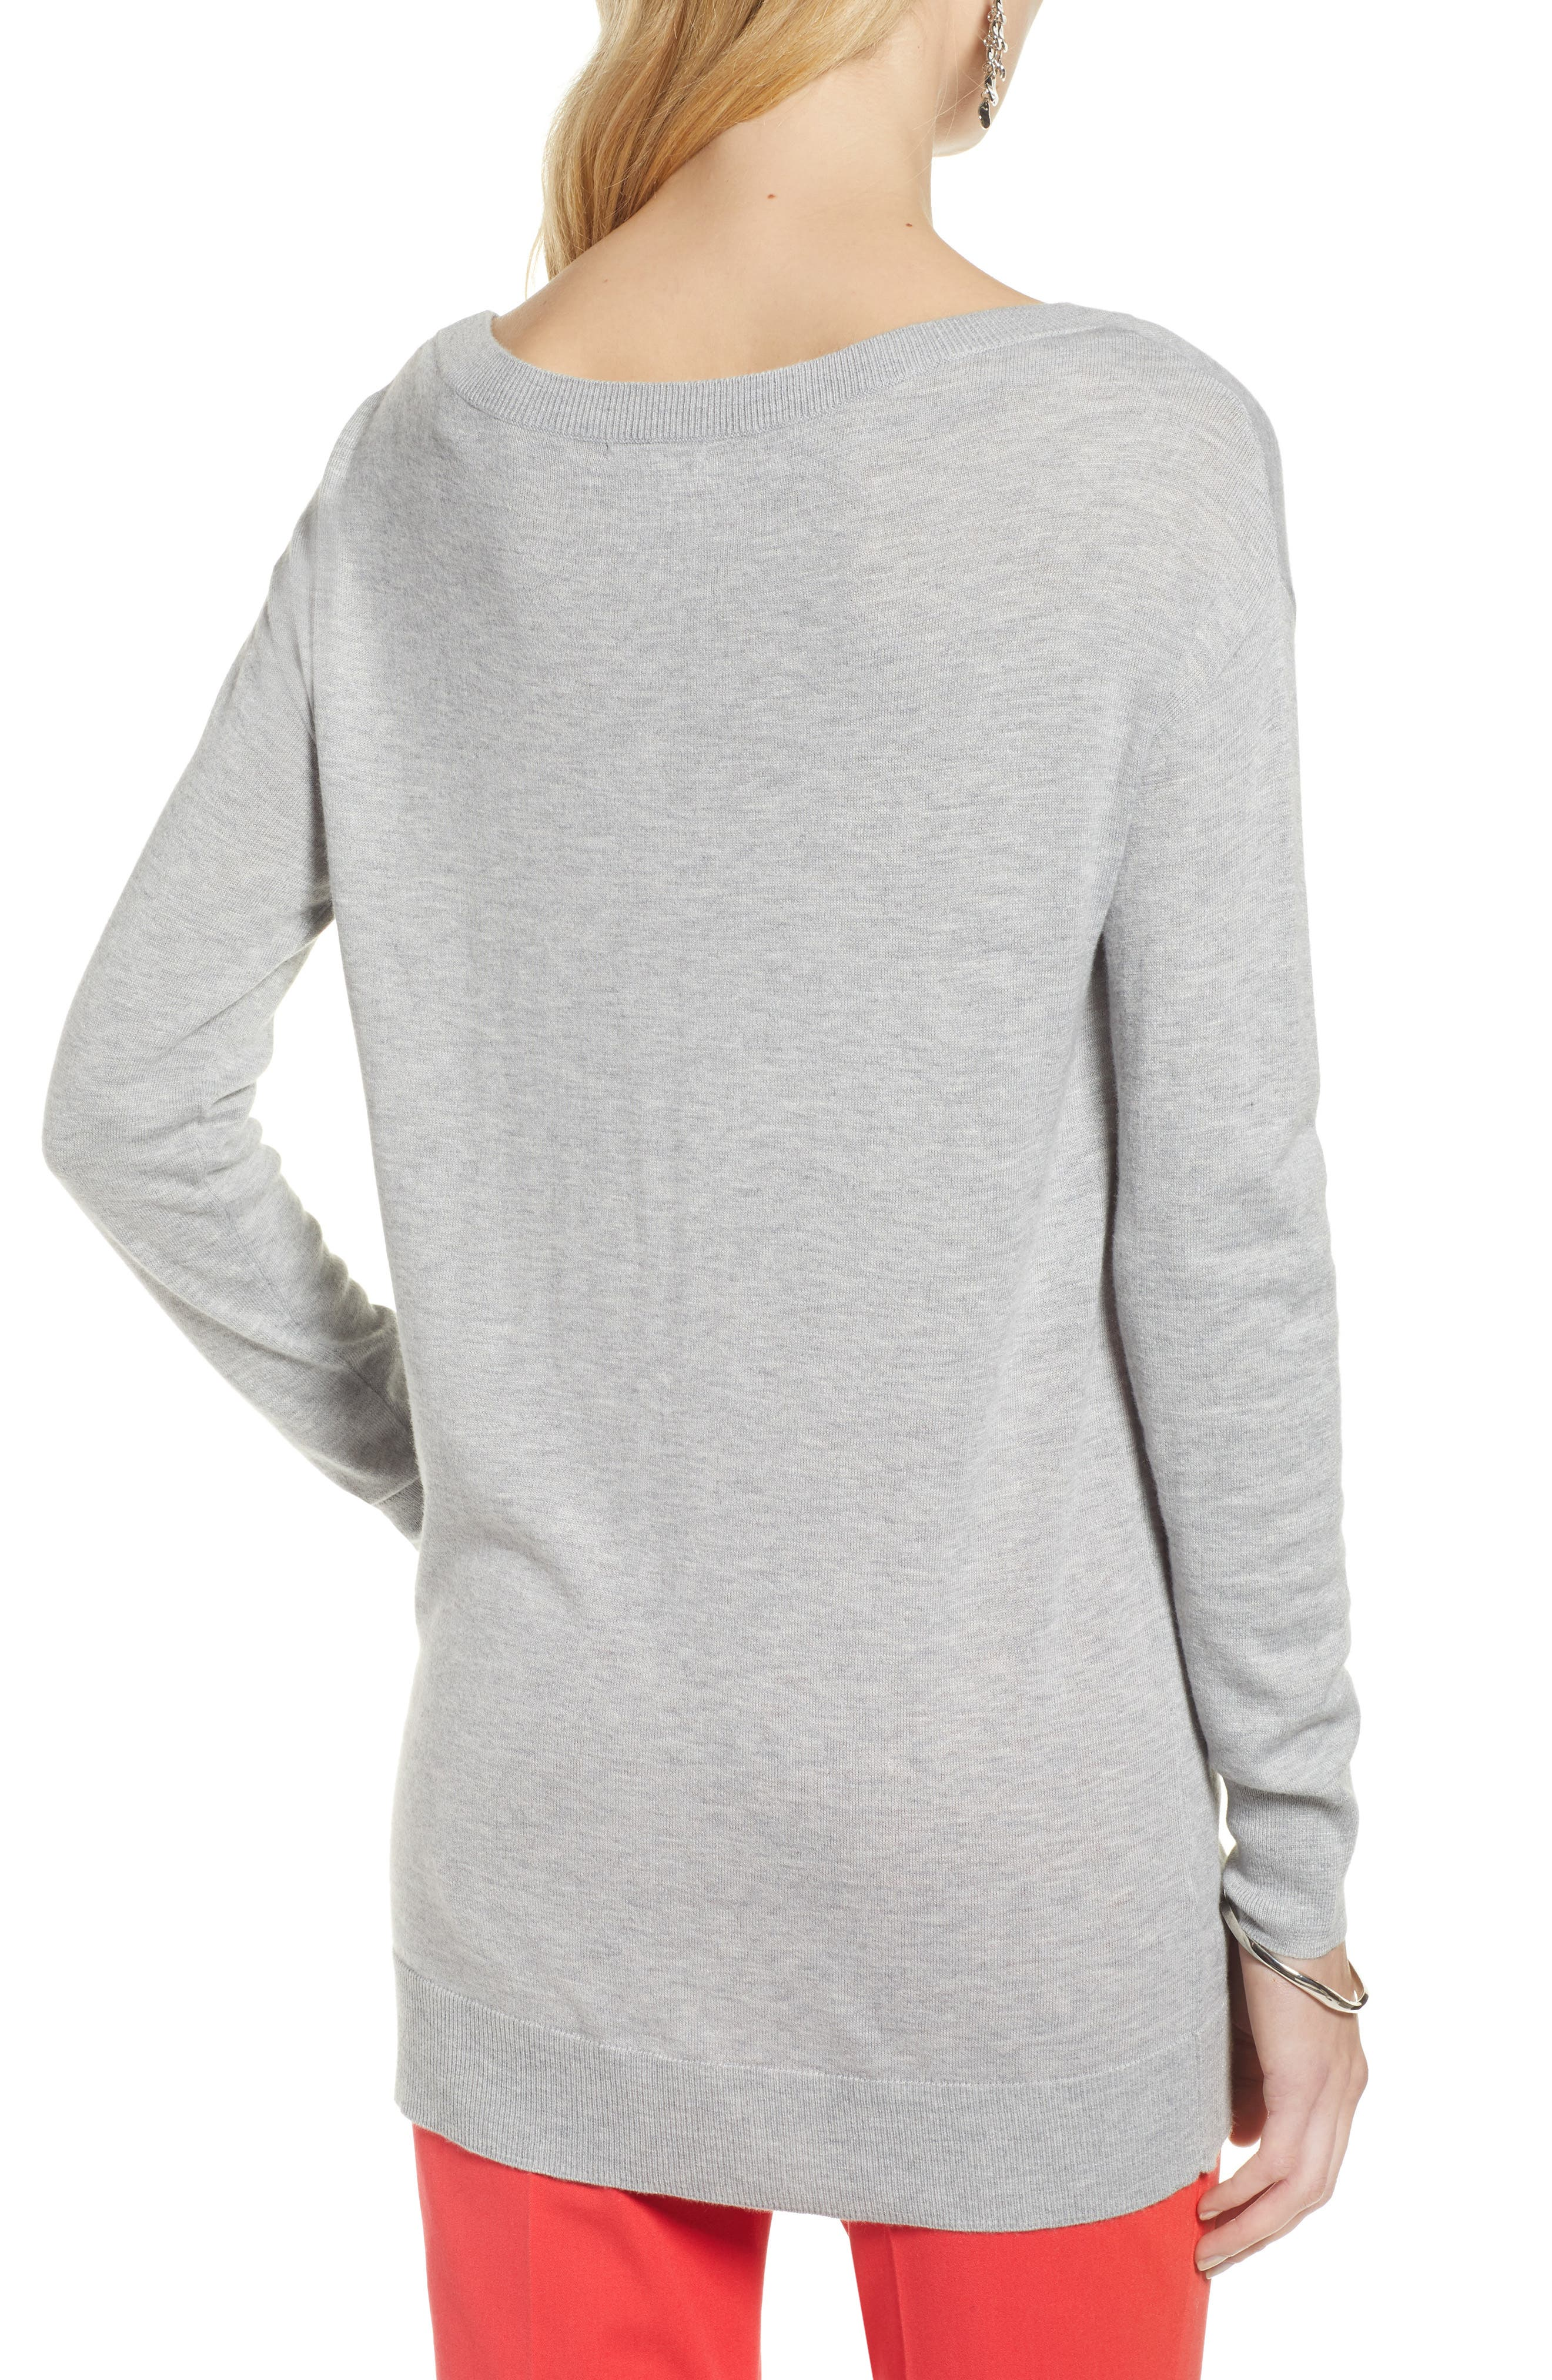 Boatneck Tunic Sweater,                             Alternate thumbnail 2, color,                             GREY HEATHER